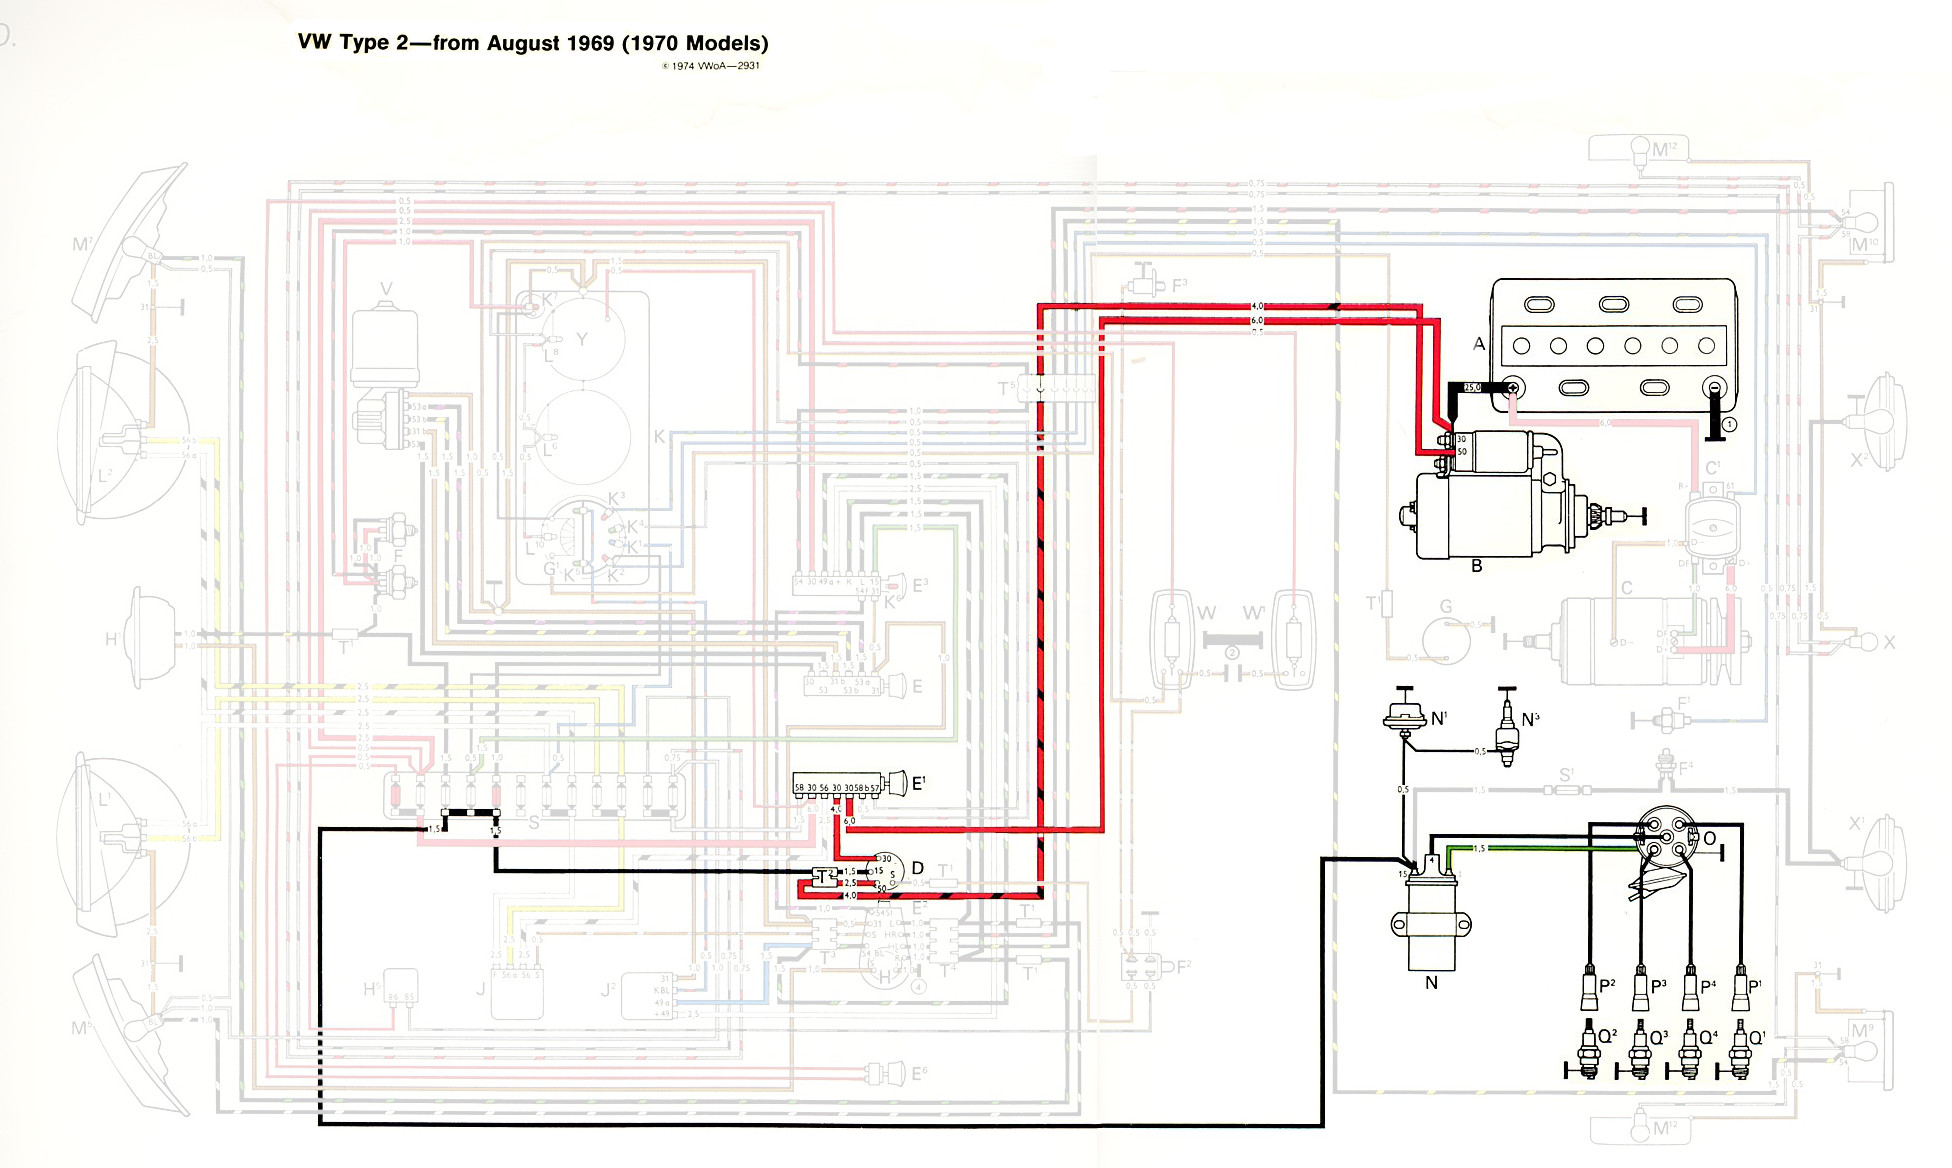 1970 Vw Starter Wiring - Wiring Diagram Services •  Volkswagen Wiring Schematic on engine schematics, plumbing schematics, transmission schematics, transformer schematics, amplifier schematics, wire schematics, ford diagrams schematics, circuit schematics, electronics schematics, ignition schematics, generator schematics, piping schematics, ecu schematics, ductwork schematics, motor schematics, computer schematics, electrical schematics, tube amp schematics, engineering schematics, design schematics,